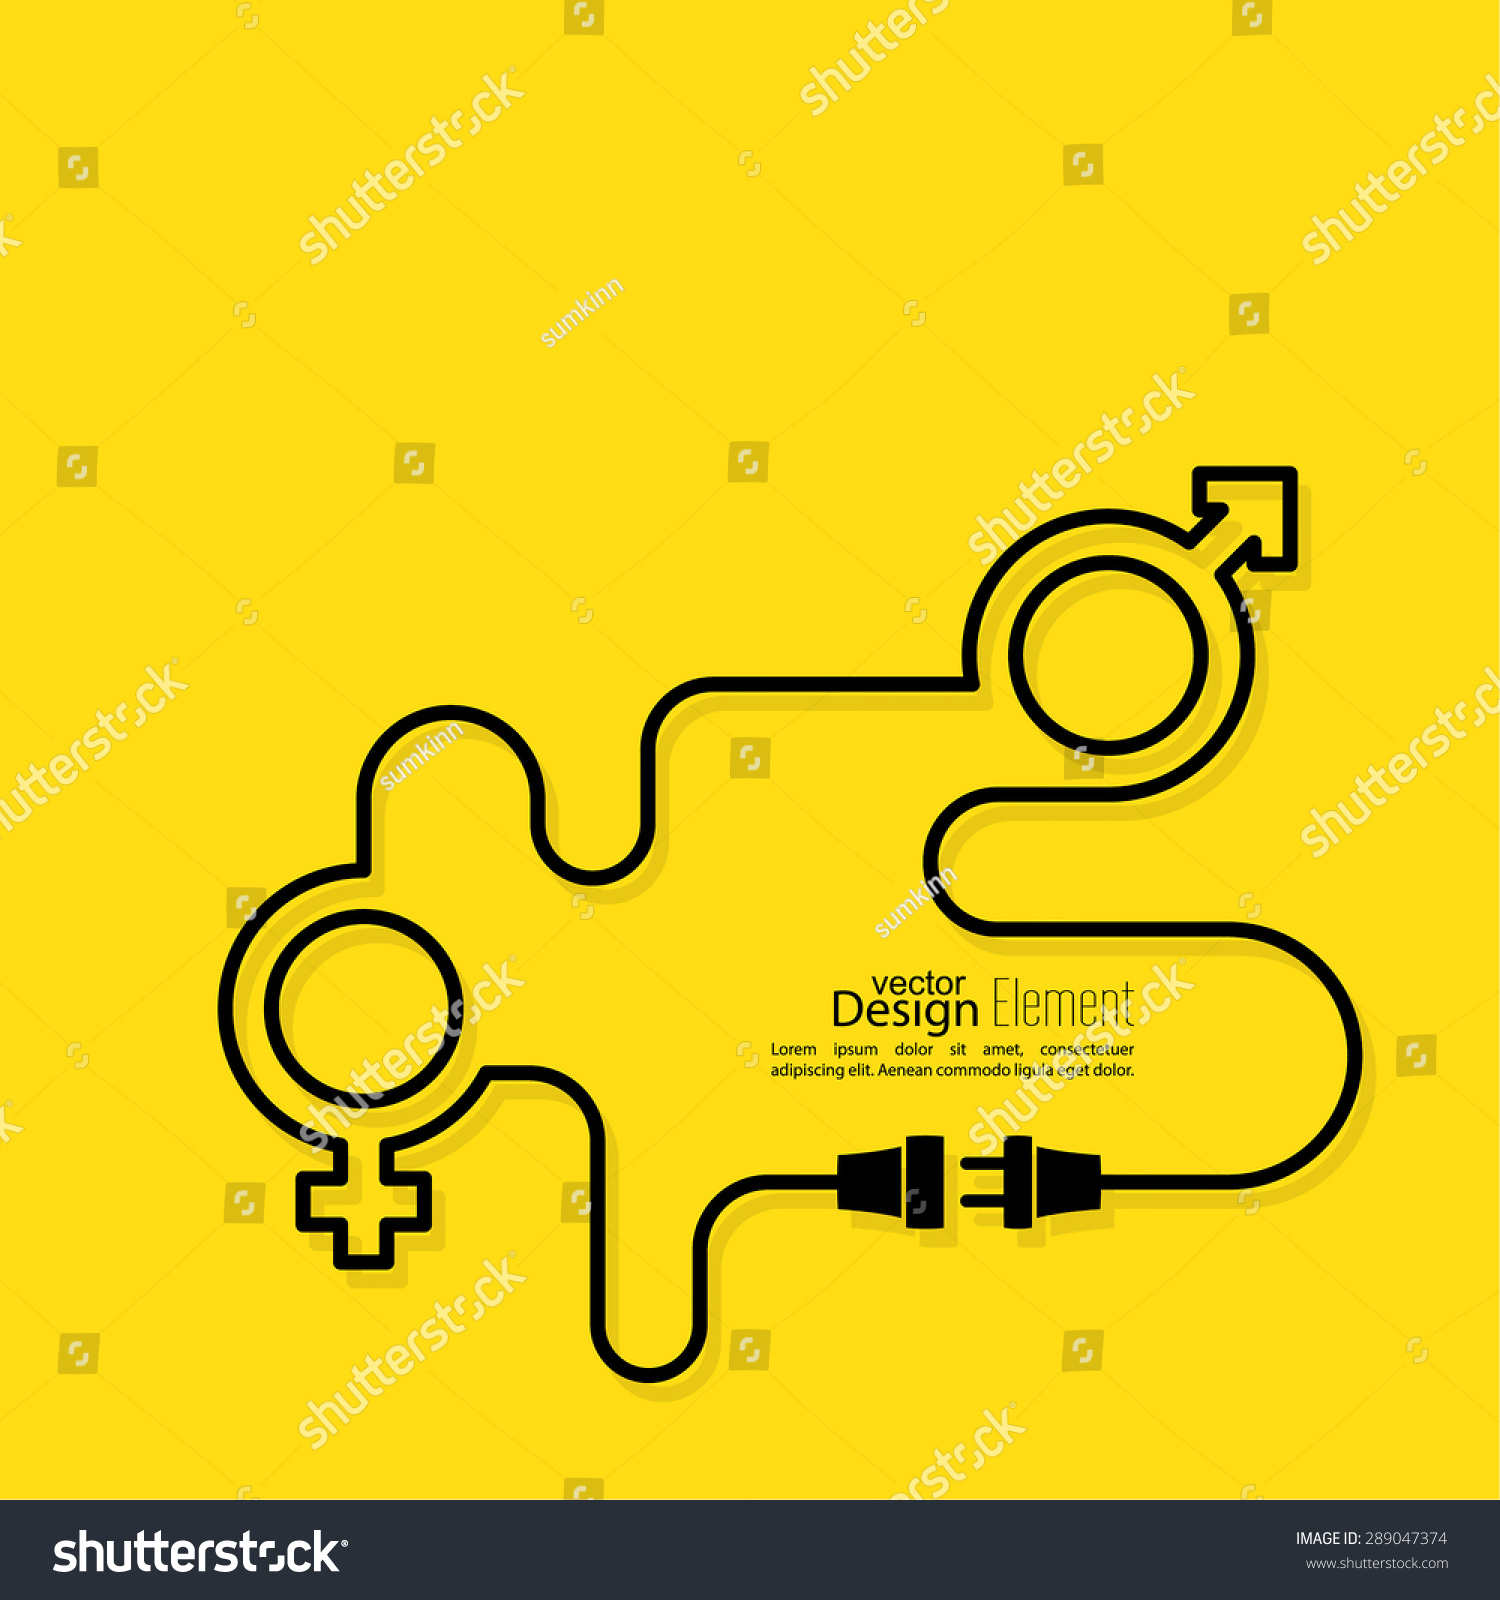 Abstract background male female symbols wire stock vector 289047374 abstract background with male and female symbols with wire plug and socket create relationship biocorpaavc Choice Image